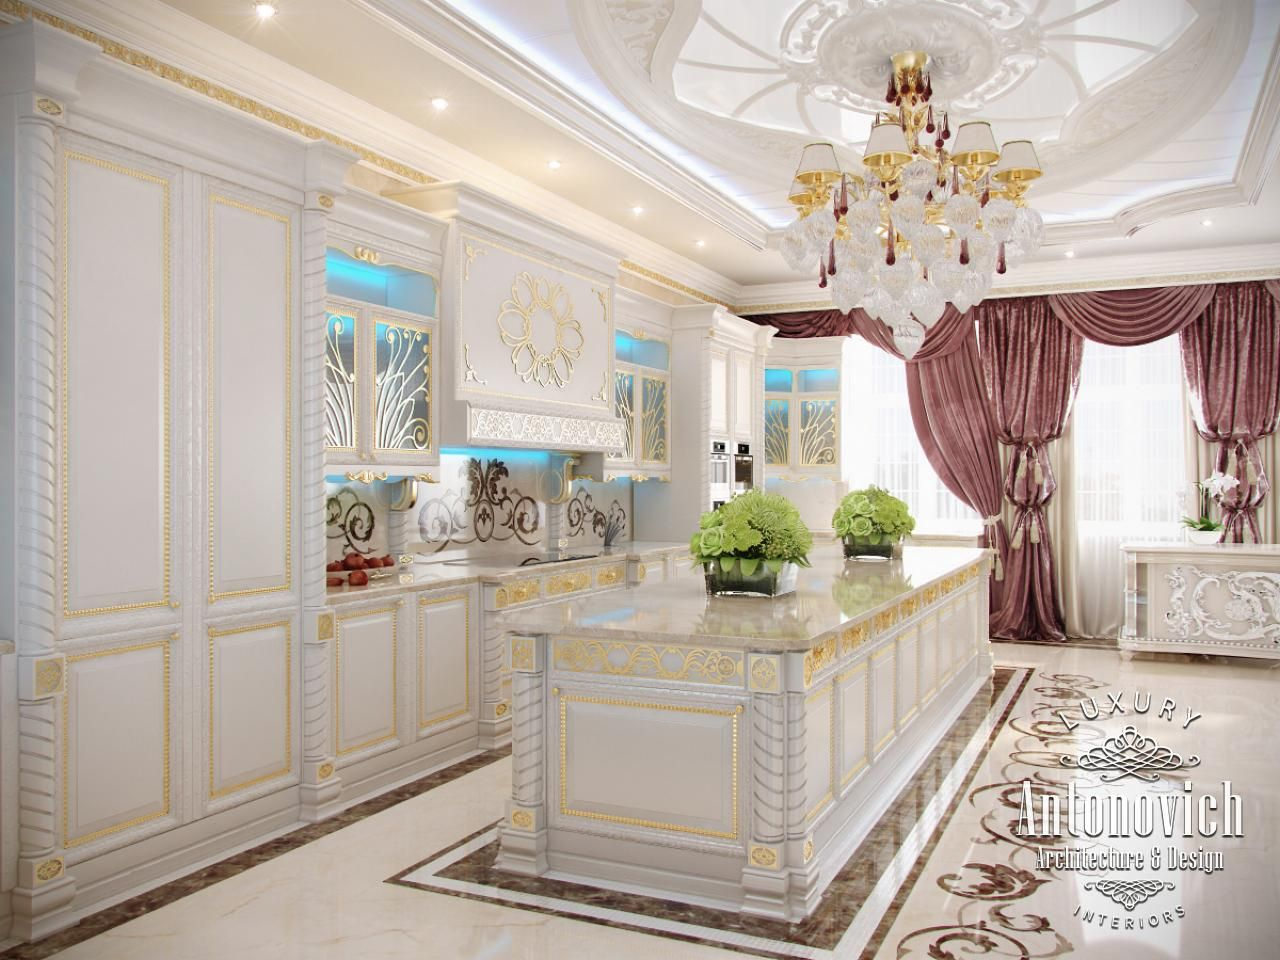 Kitchen design in dubai kitchen with refined character for Kitchen design dubai